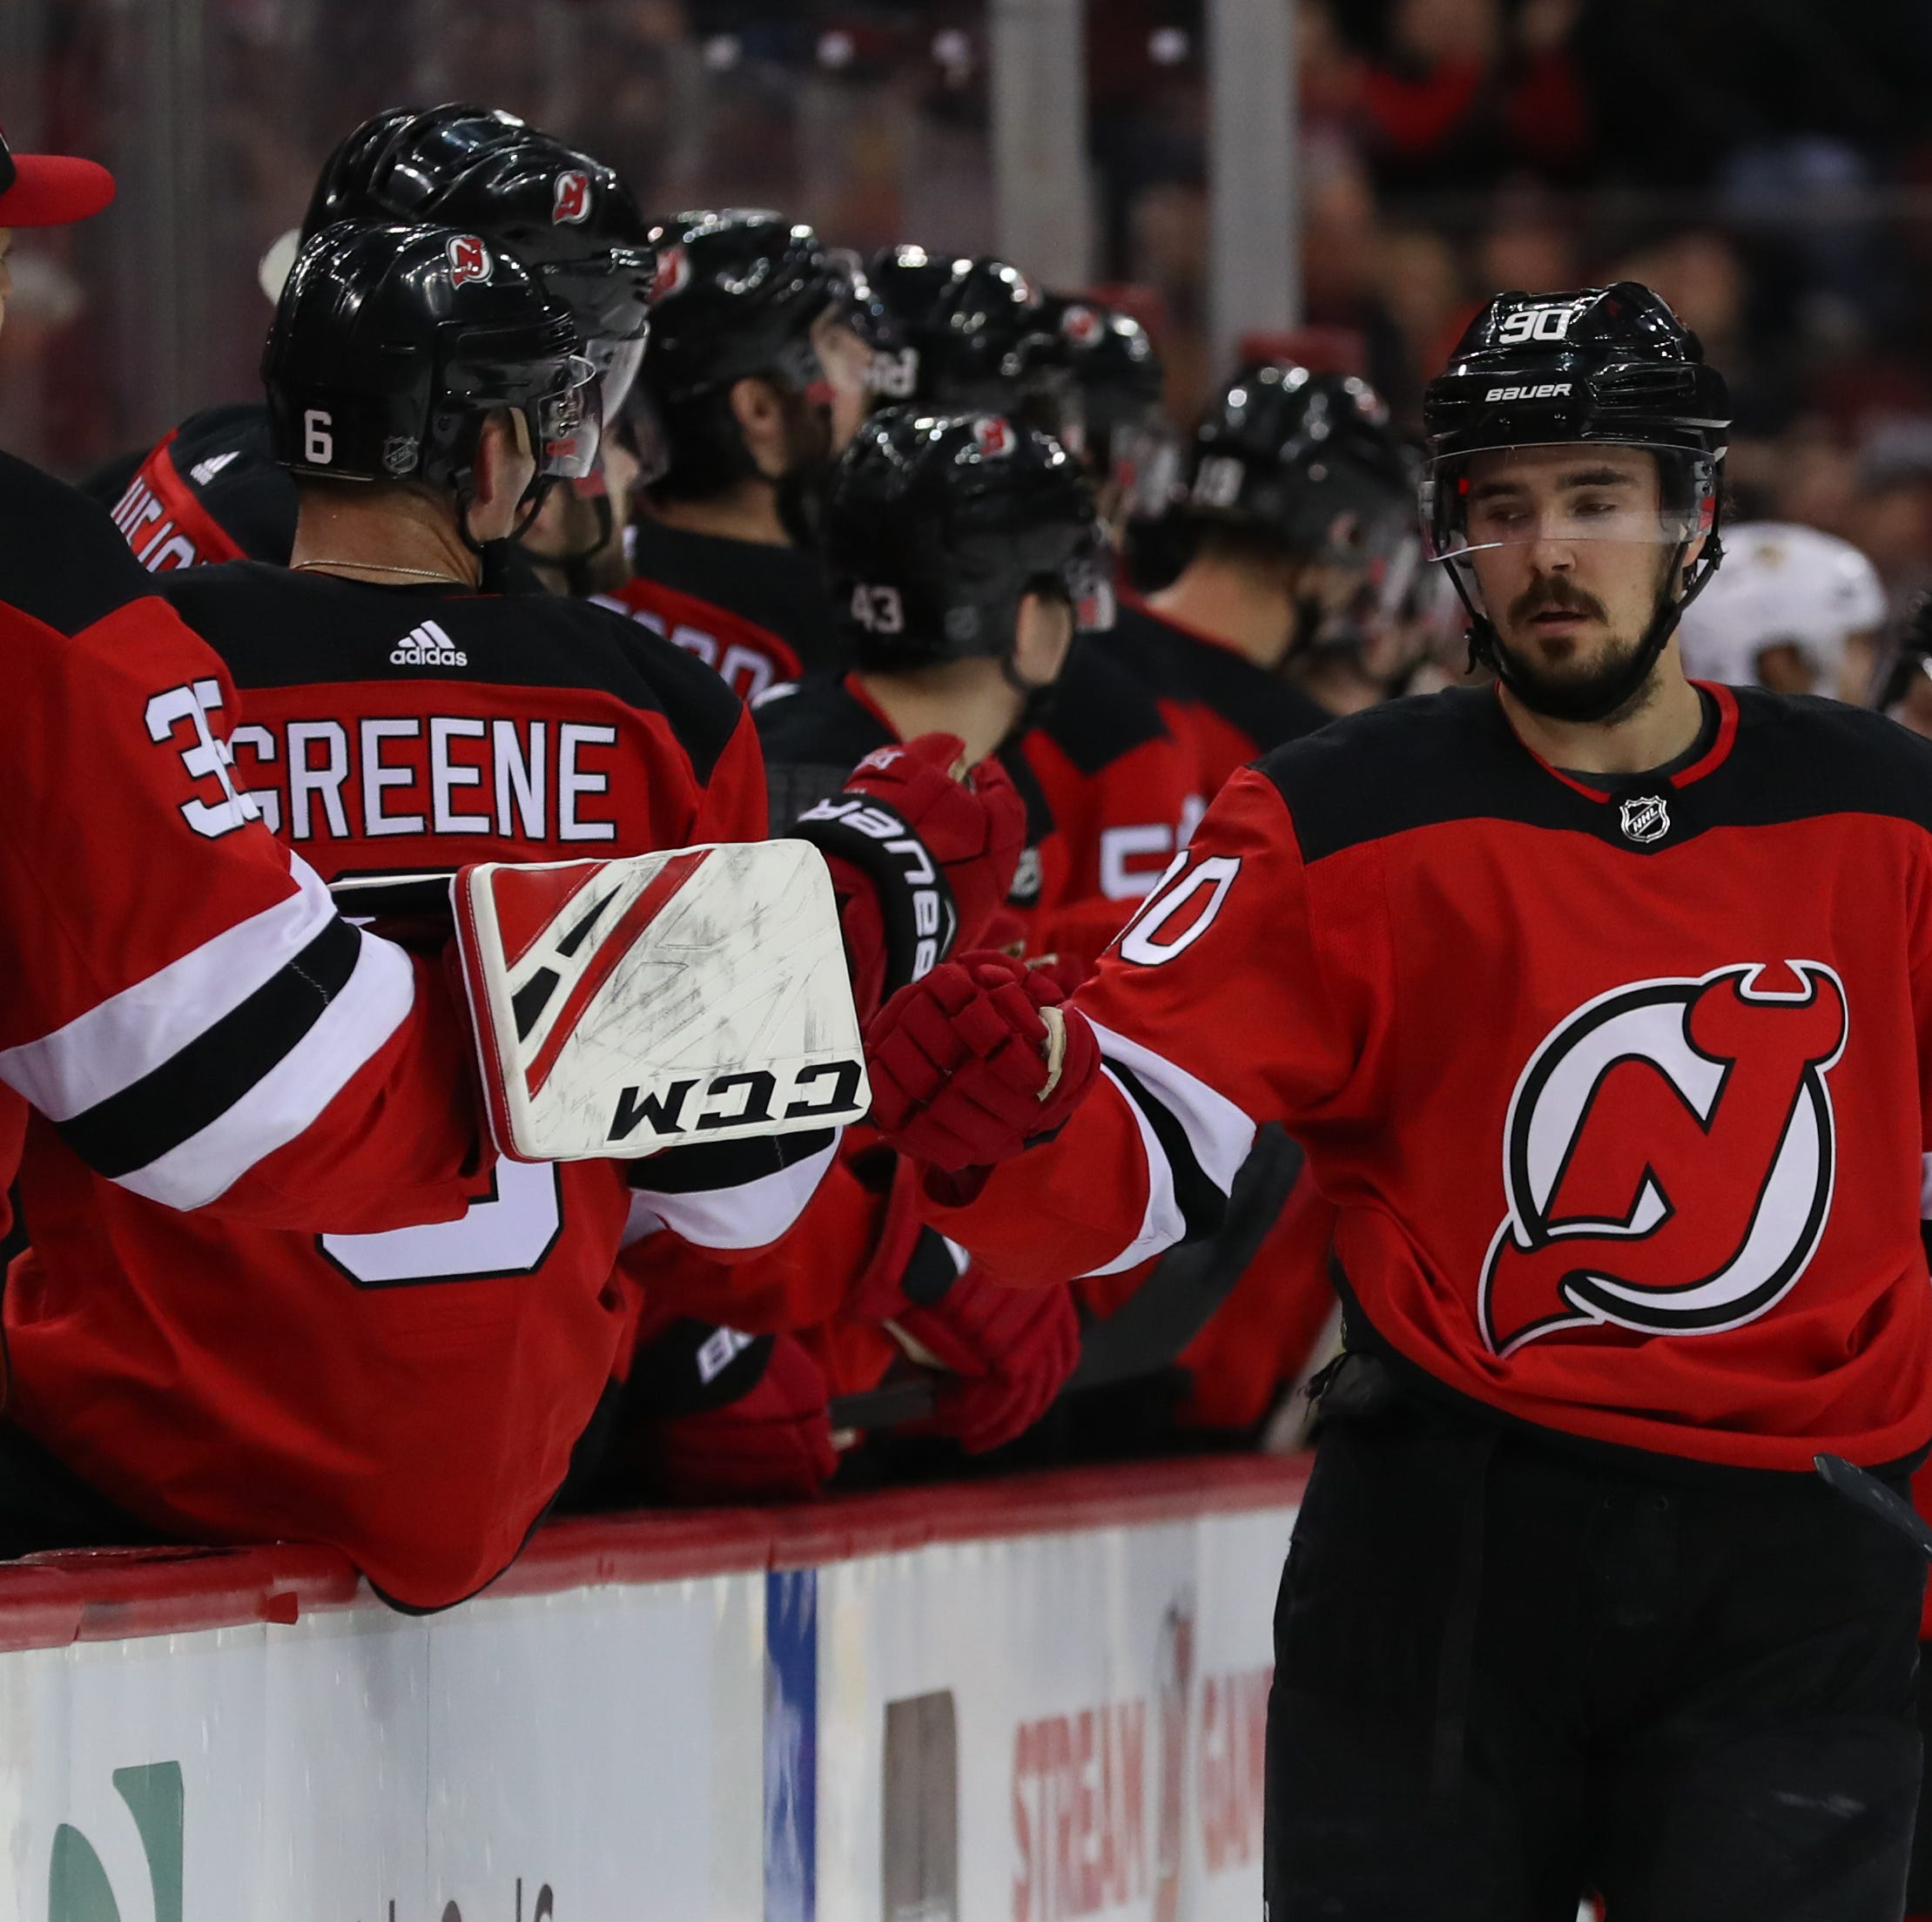 Devils trade Marcus Johansson to Bruins at NHL trade deadline